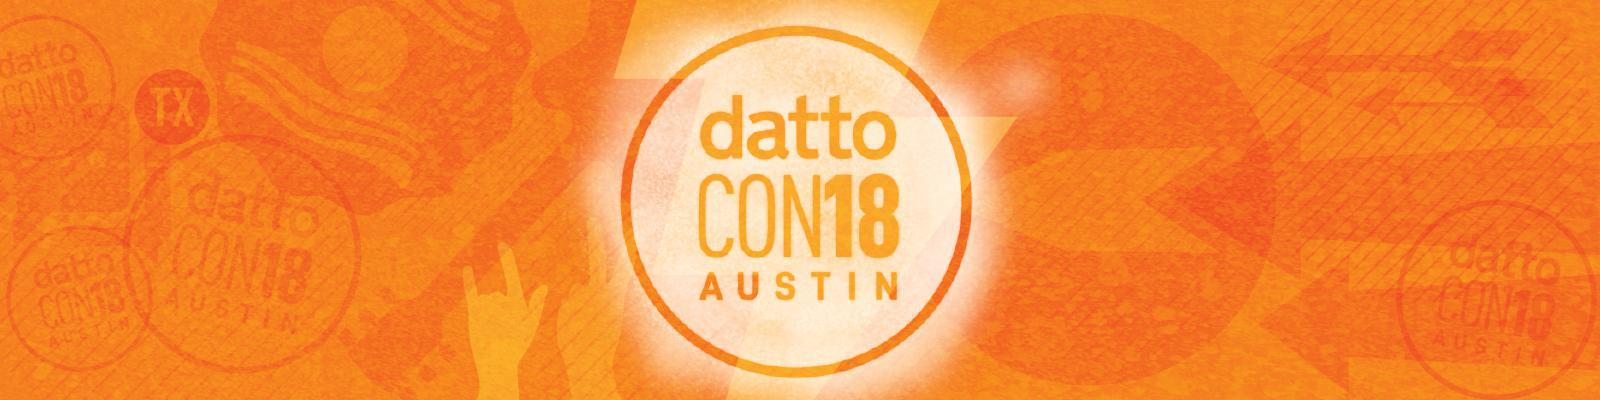 DattoCon18 Recap: Day Two